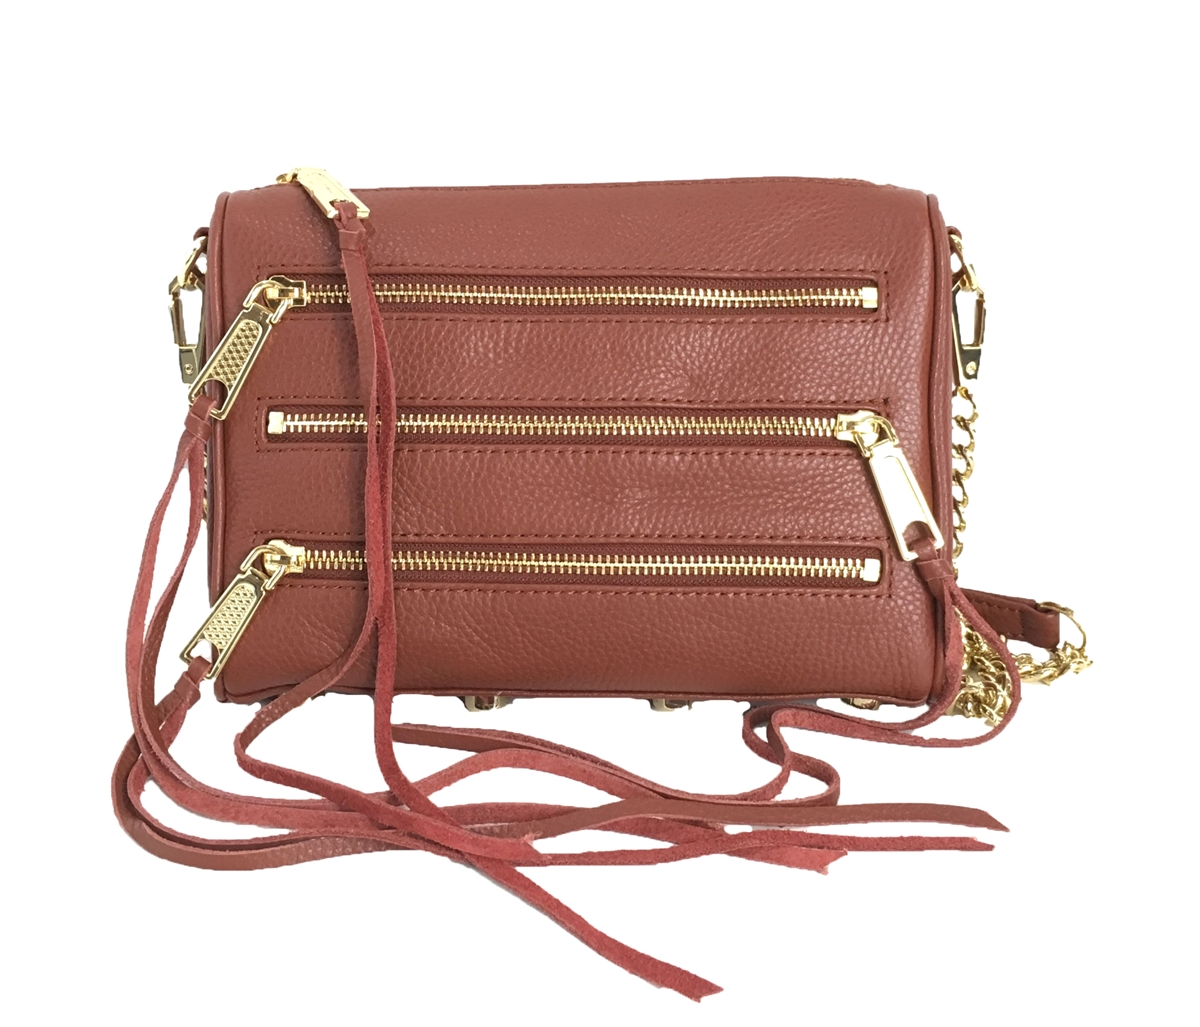 fd2ba697e51 Rebecca Minkoff Mini 5 Zip Rocker Leather Crossbody Bag, Whiskey